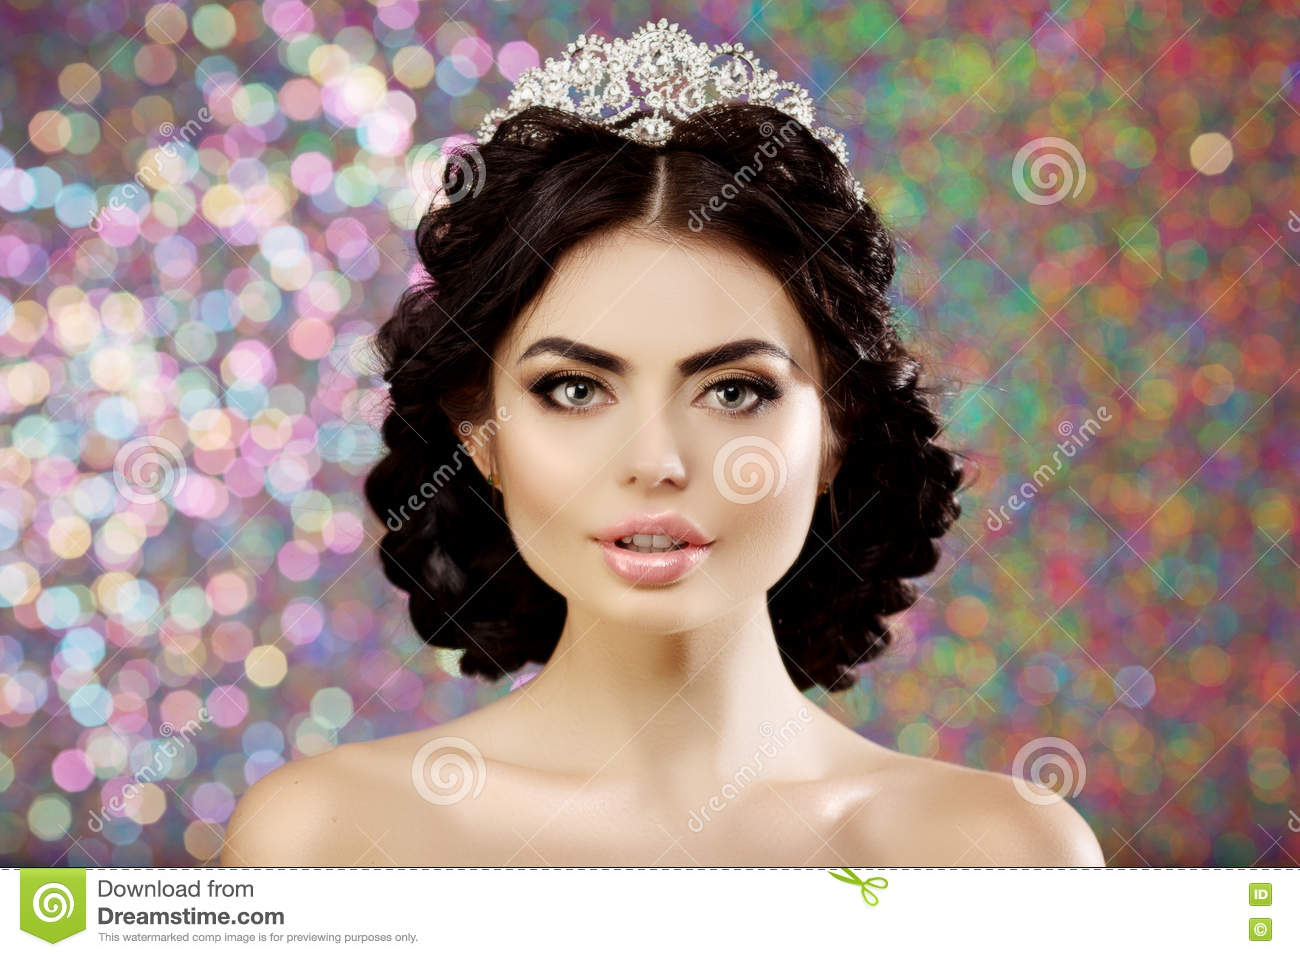 Queen Hairstyles: Woman, Lux Crown, Queen Princess Lights Party Background